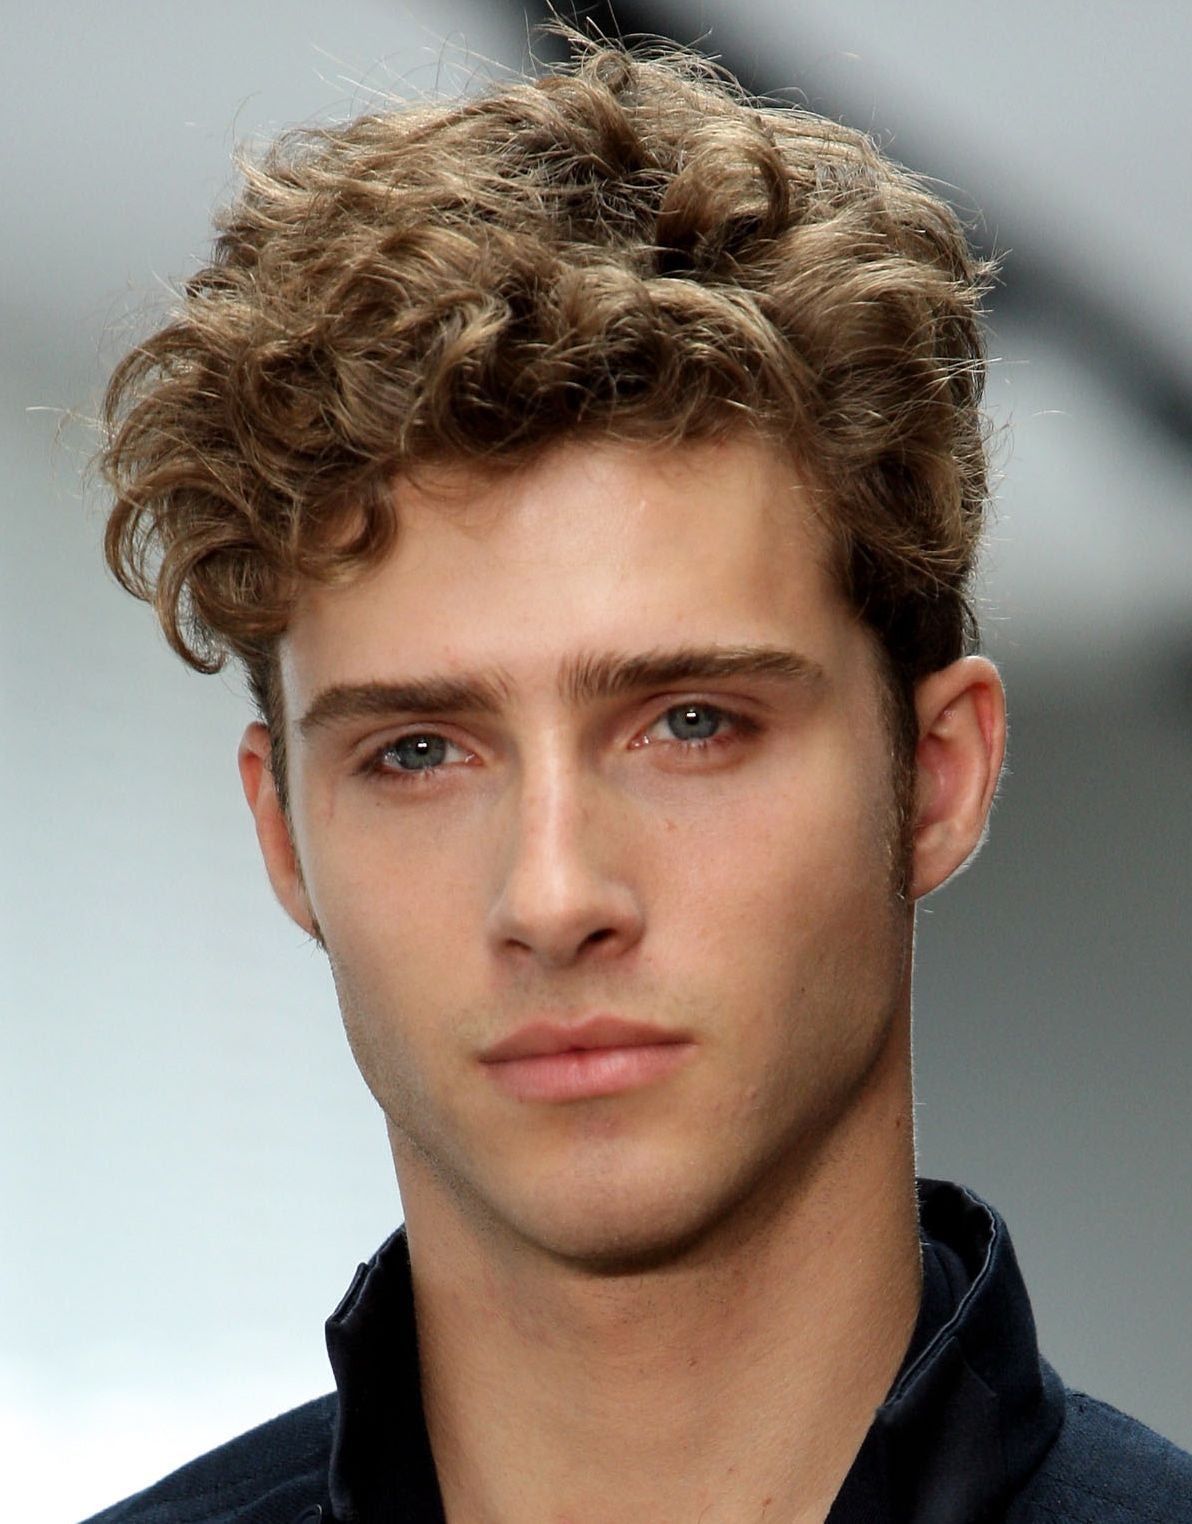 Men's Curly Hairstyles for Thick Hair